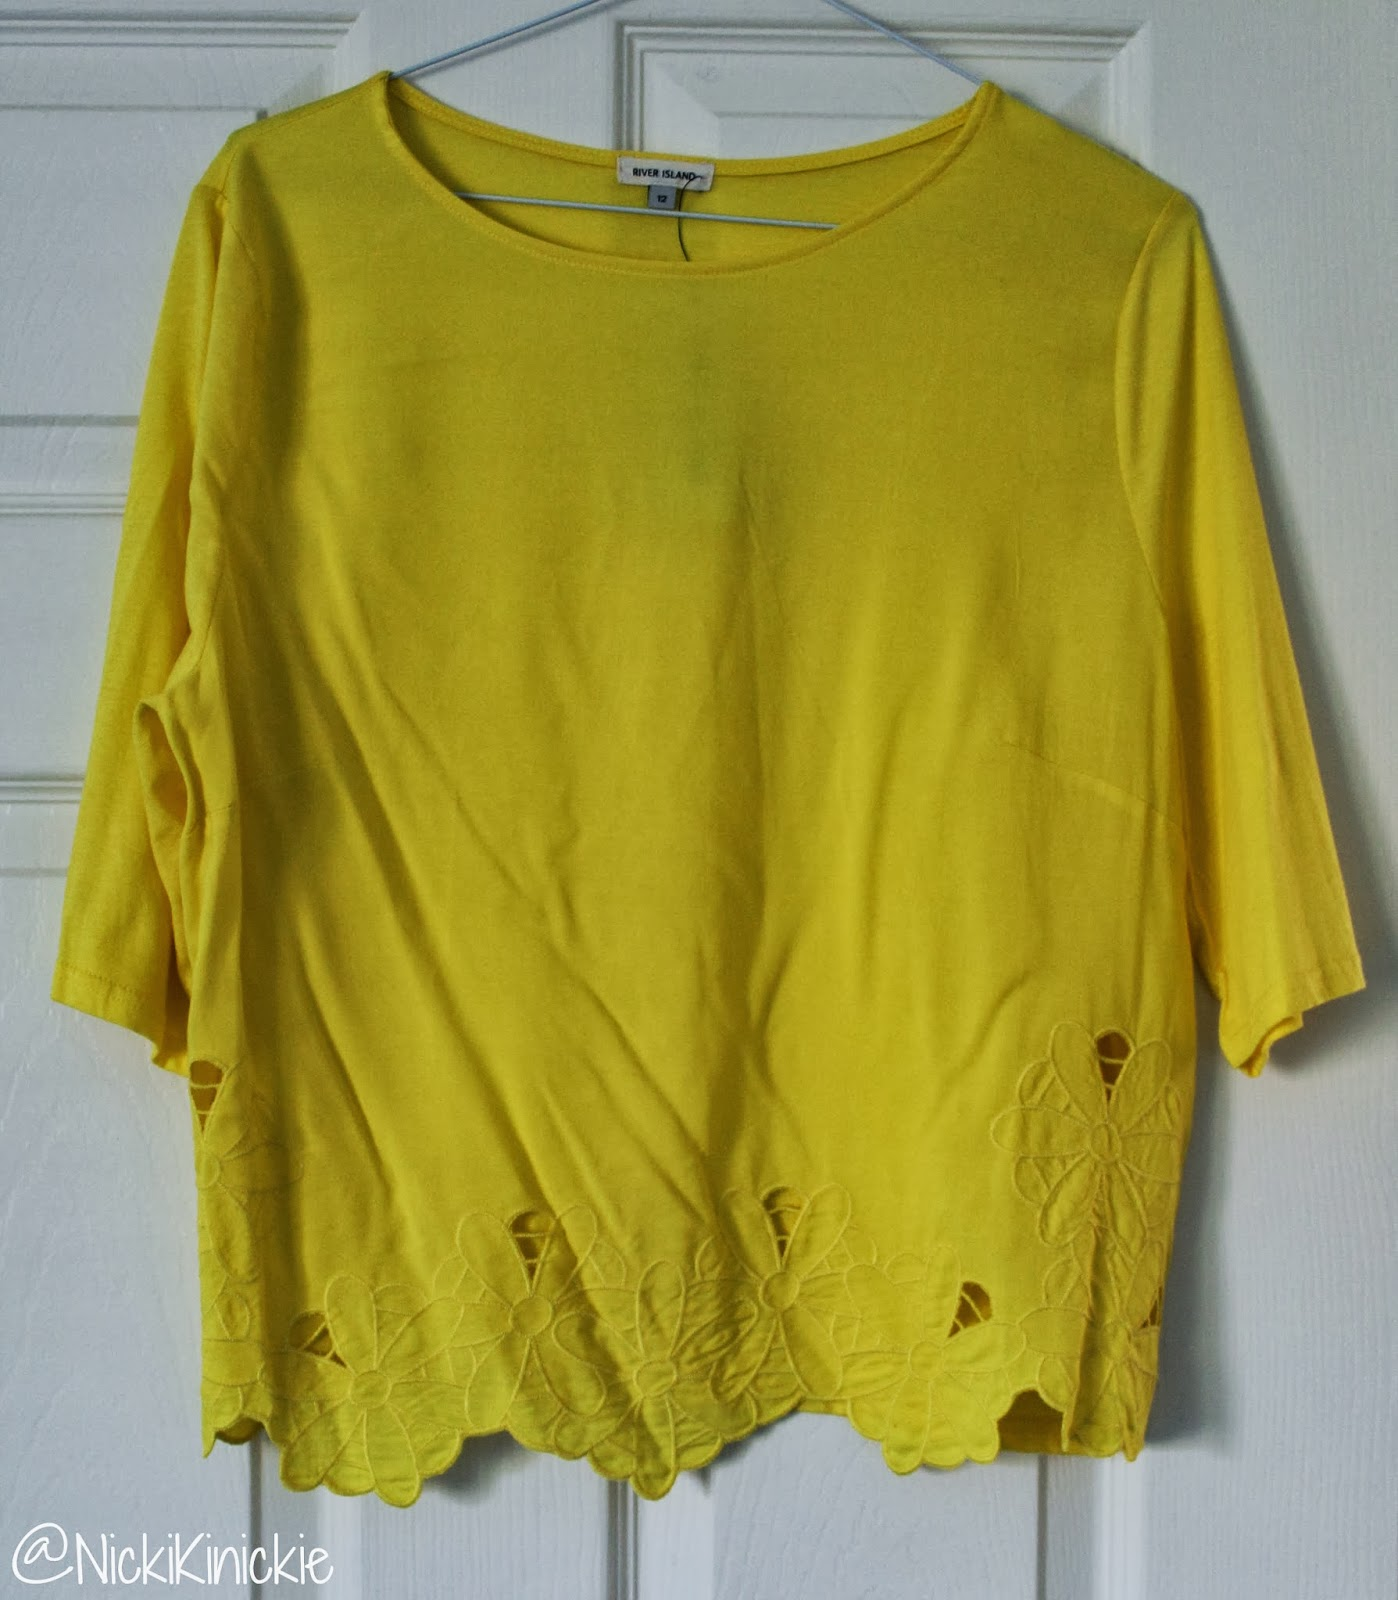 River Island, Tee, Yellow, Floral